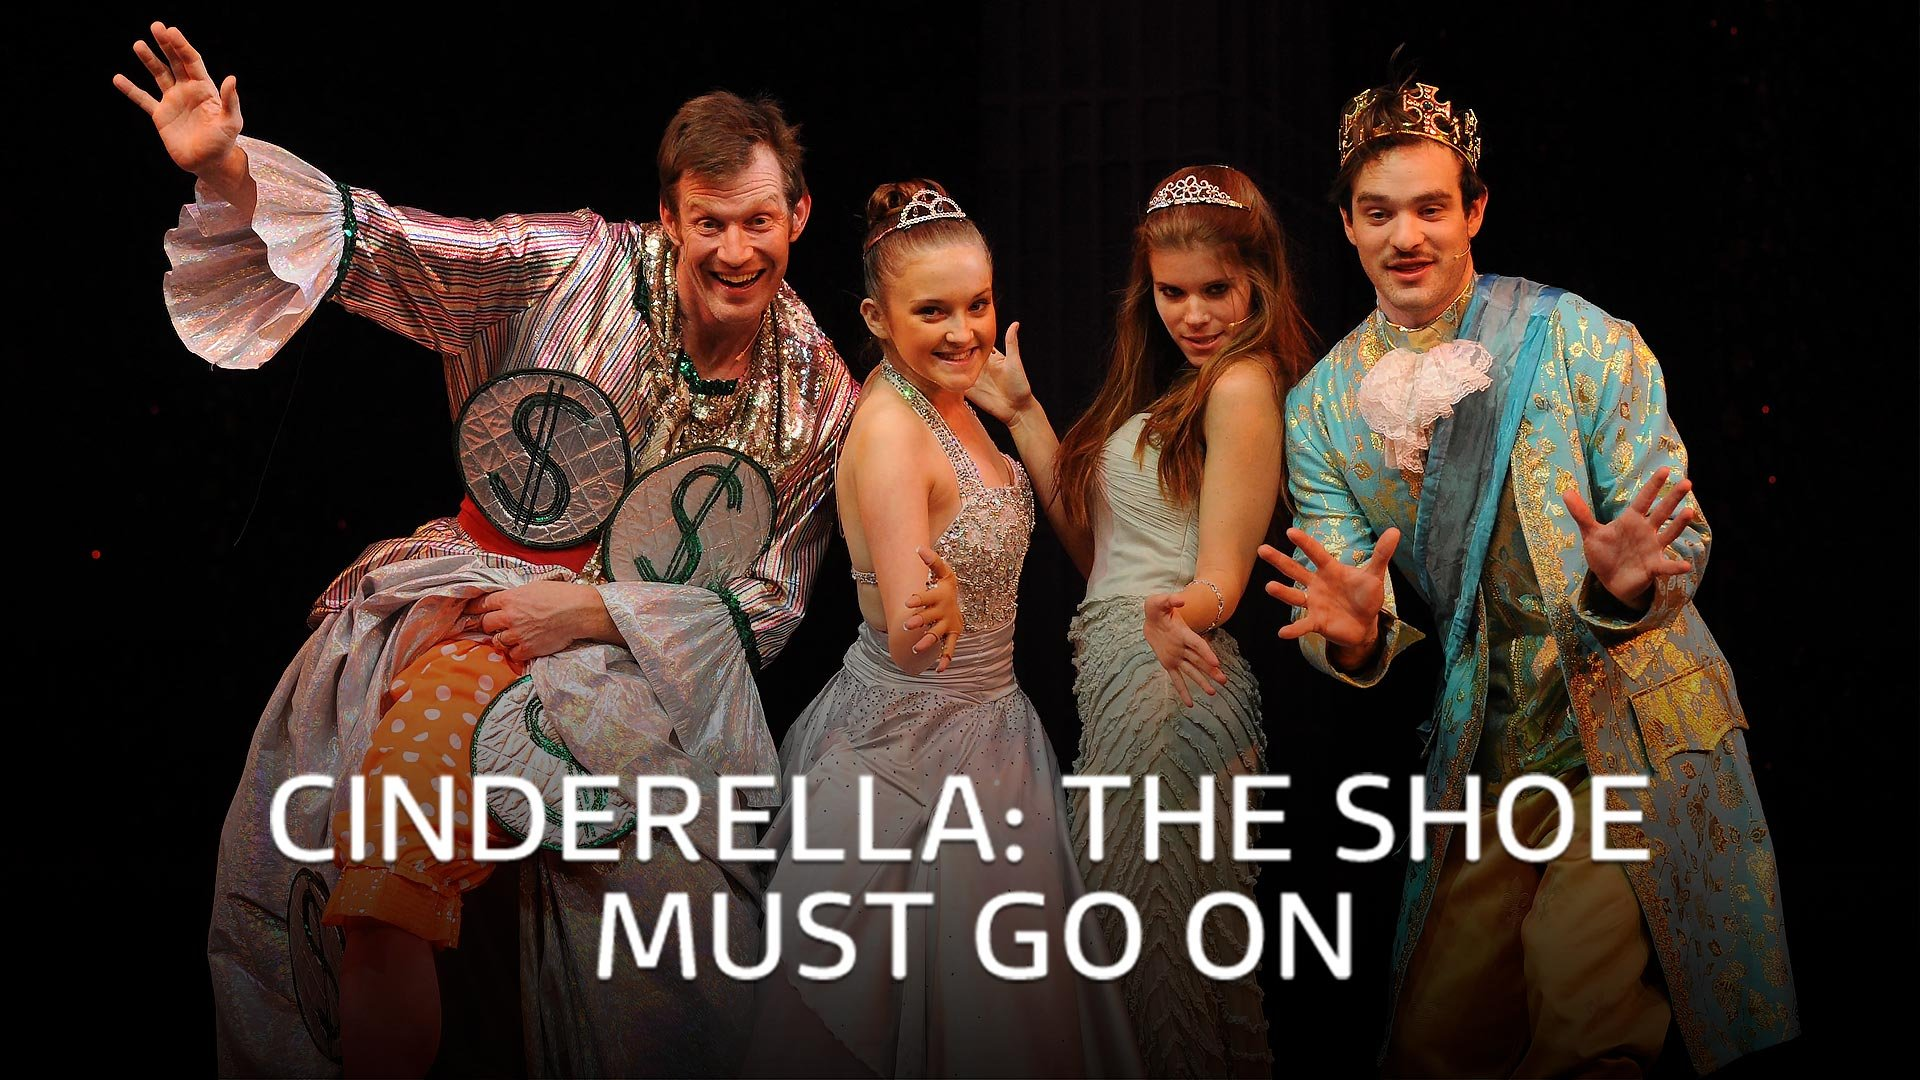 Cinderella: The Shoe Must go on on BritBox UK